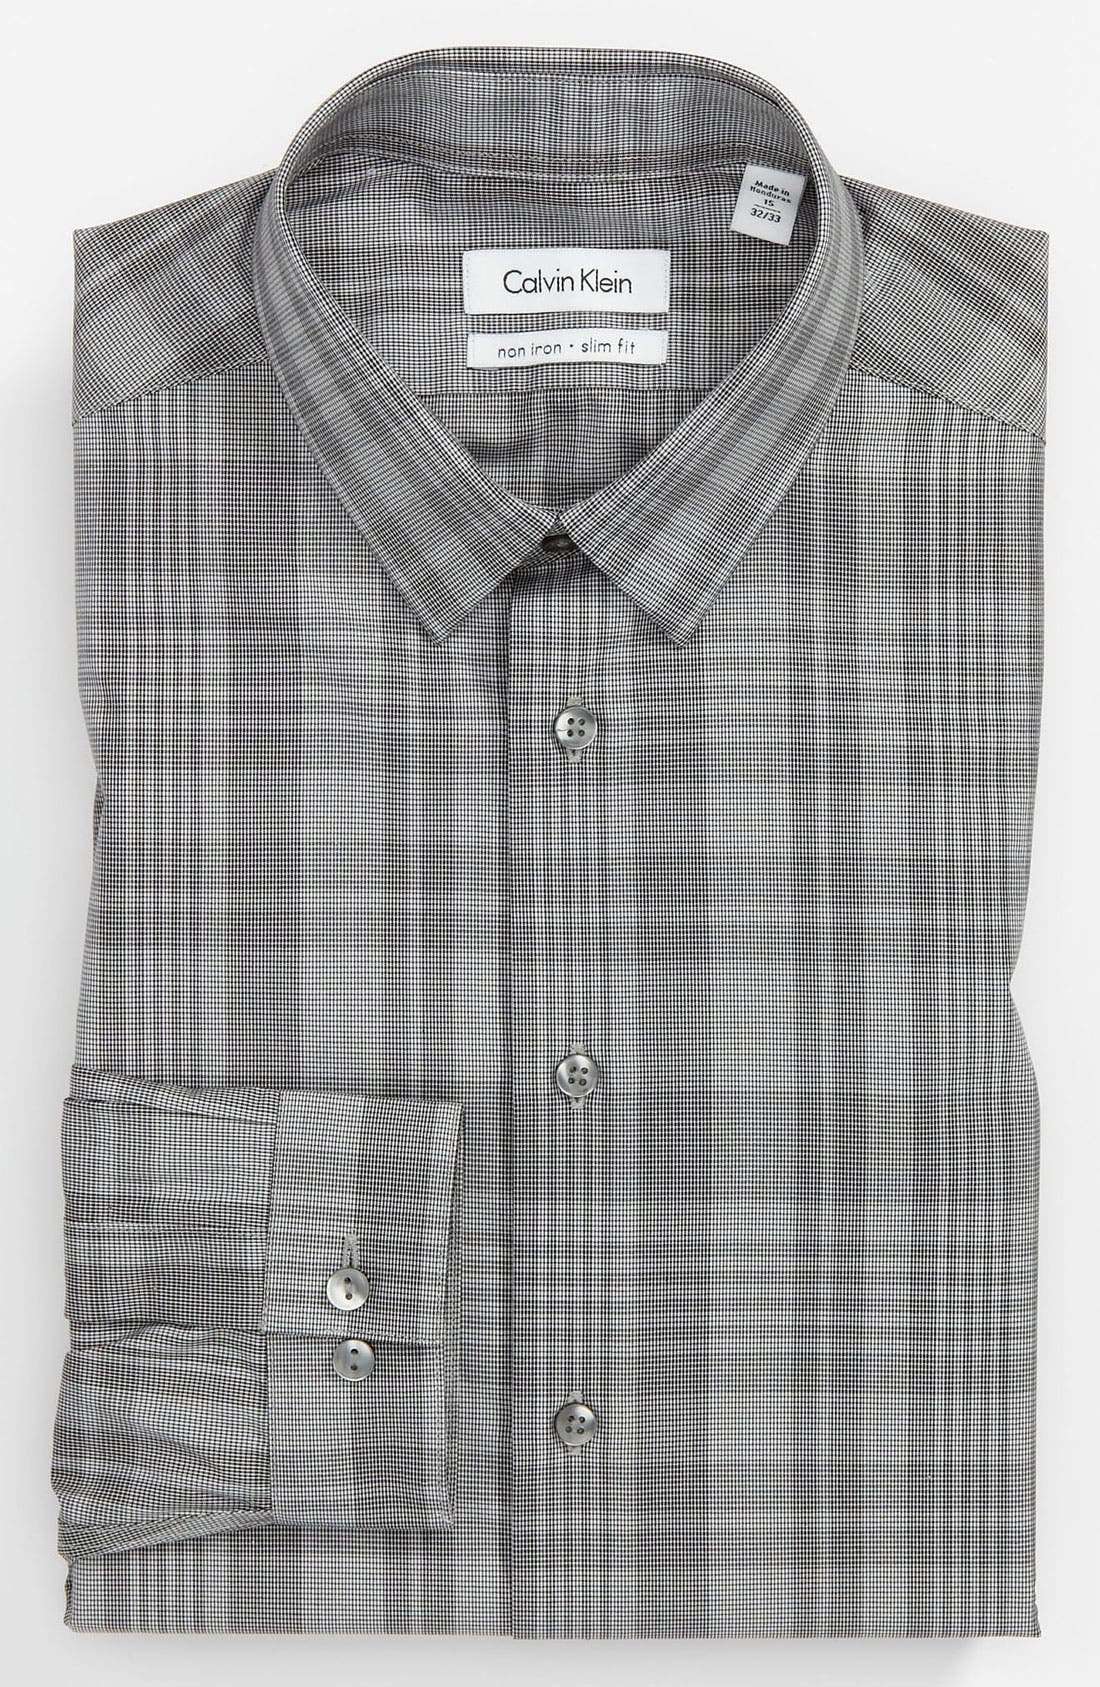 Alternate Image 1 Selected - Calvin Klein Slim Fit Non-Iron Dress Shirt (Online Only)